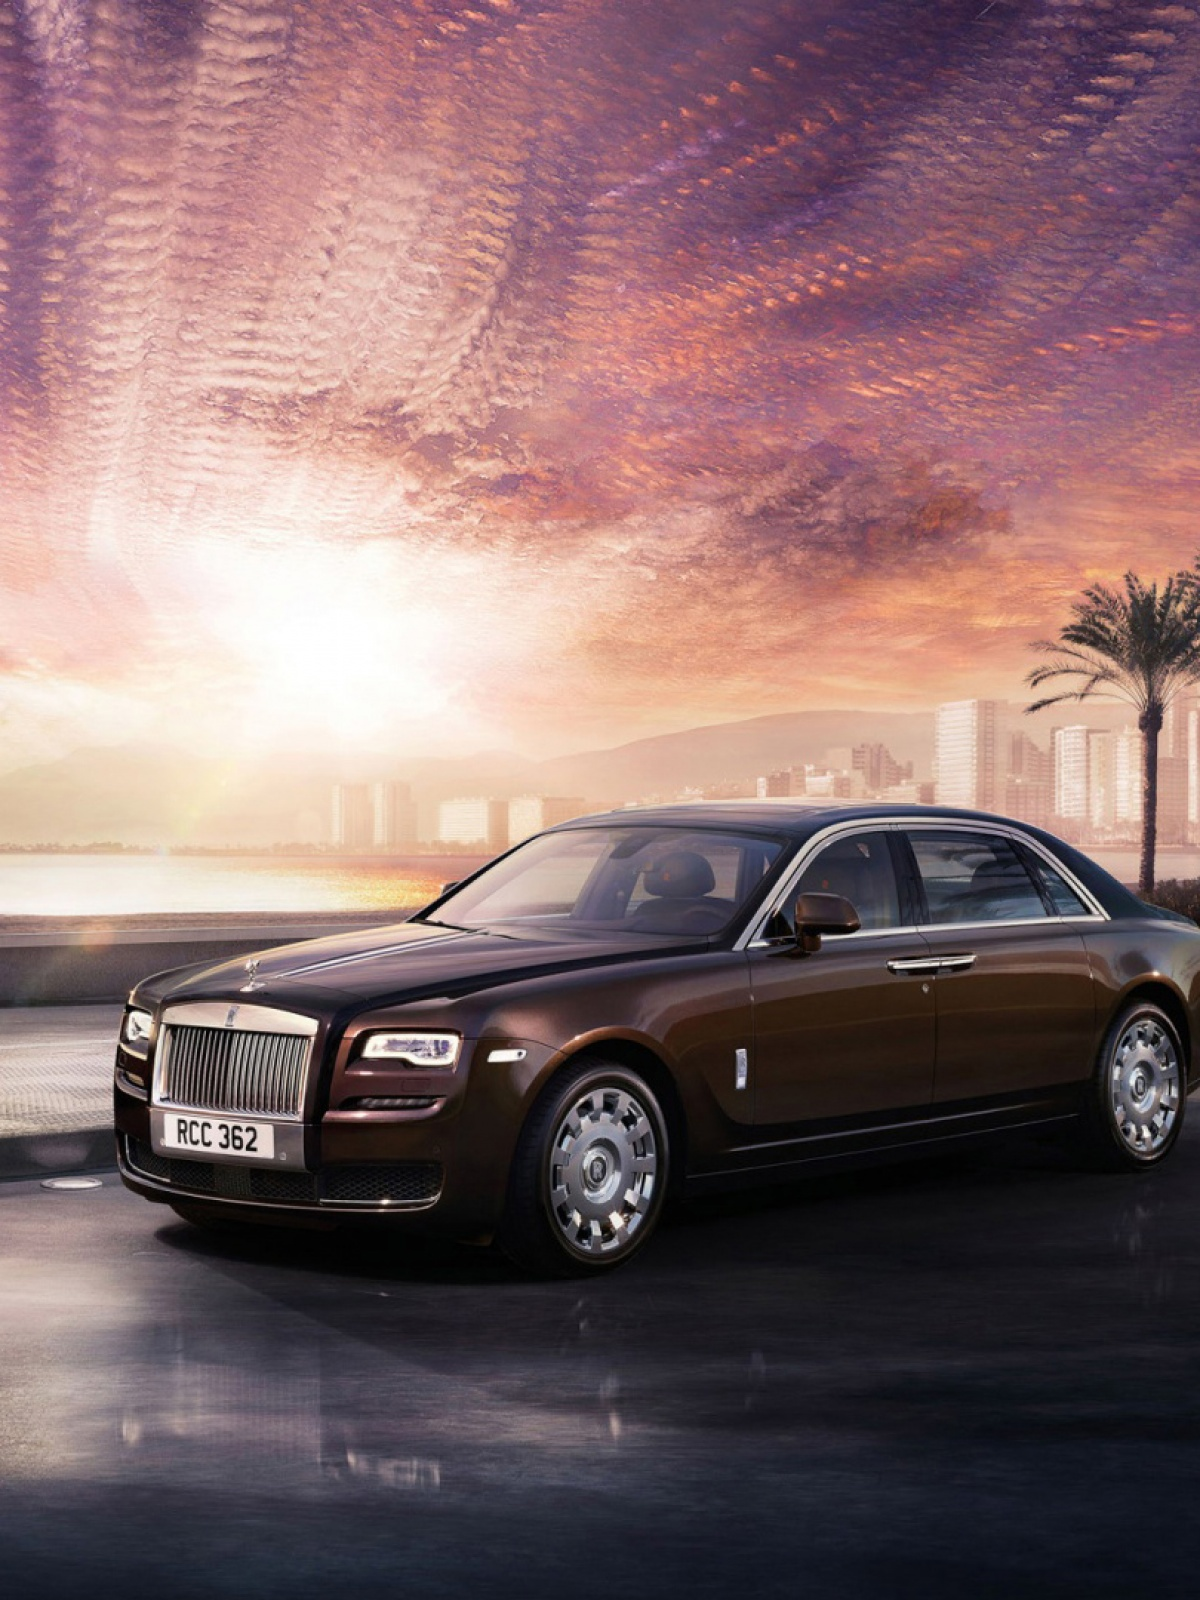 rolls royce ghost series mobile wallpaper - mobiles wall